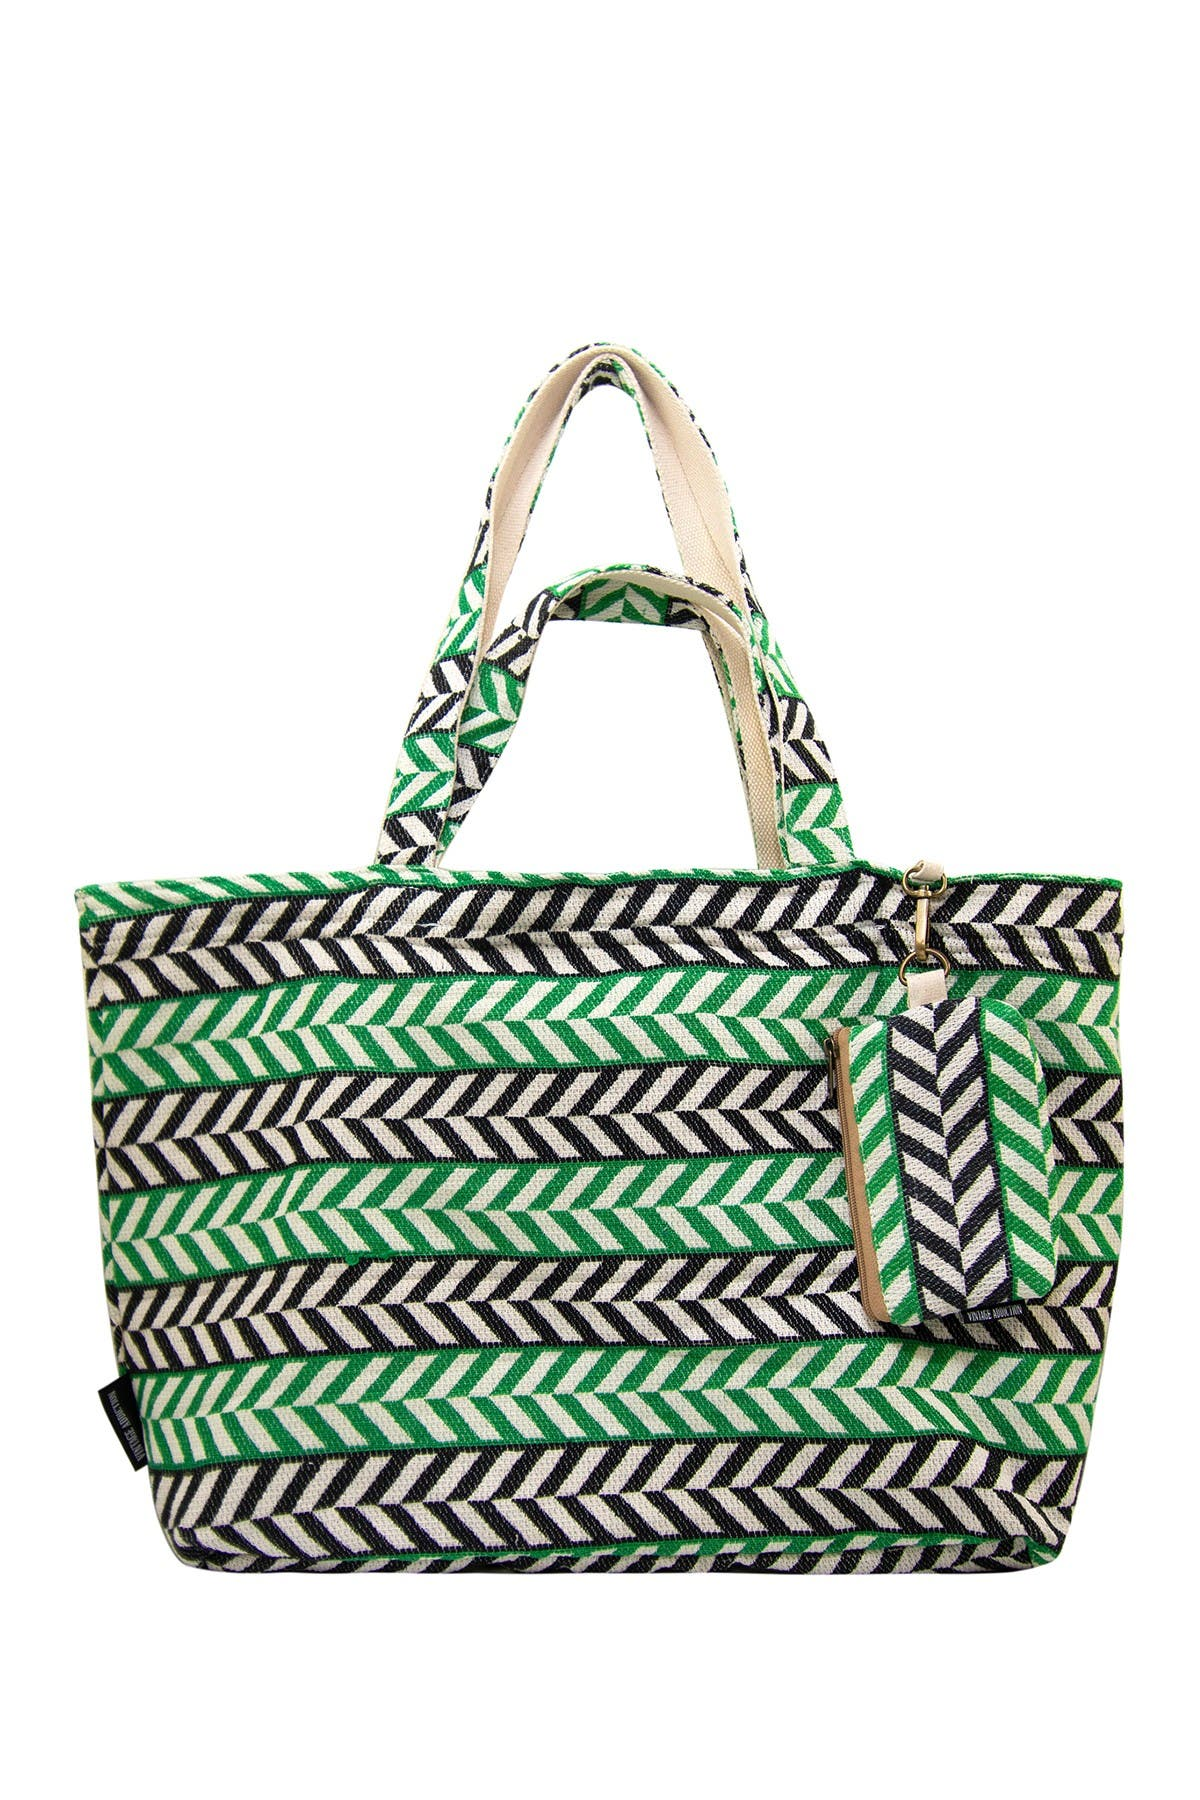 Image of Vintage Addiction Jacquard & Canvas Tote with Matching Clutch